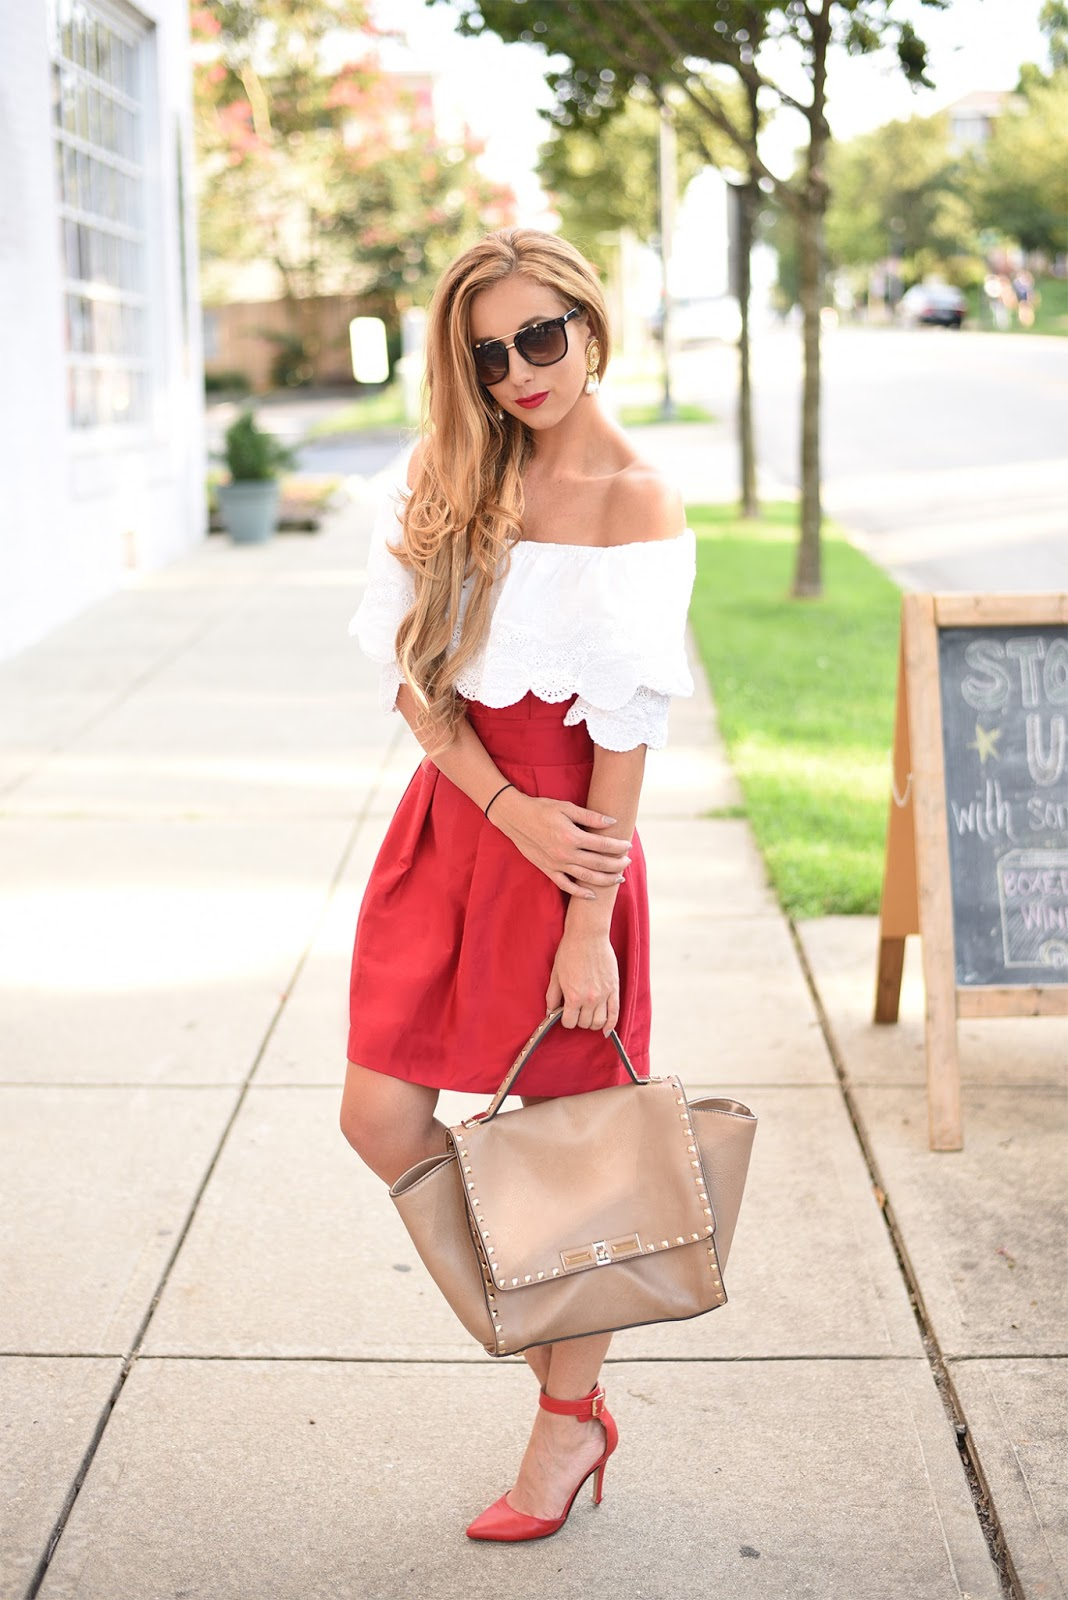 How-to-wear-red-lips-and-off-the-shoulder-top-for-summer-fourth-of-july